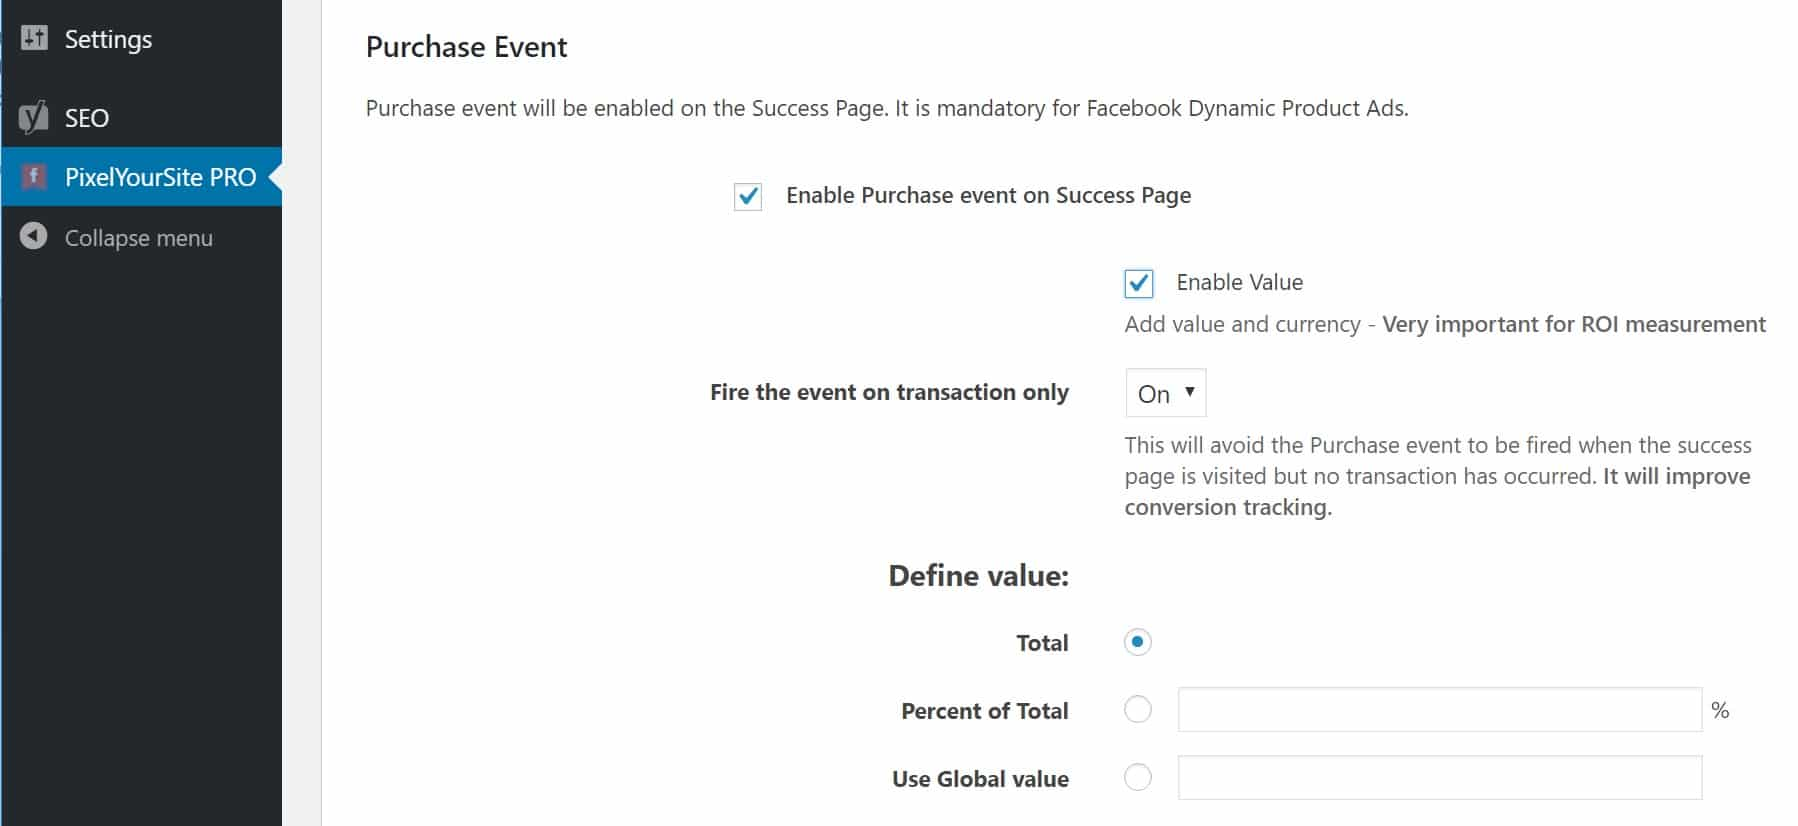 easy digital downloads purchase event